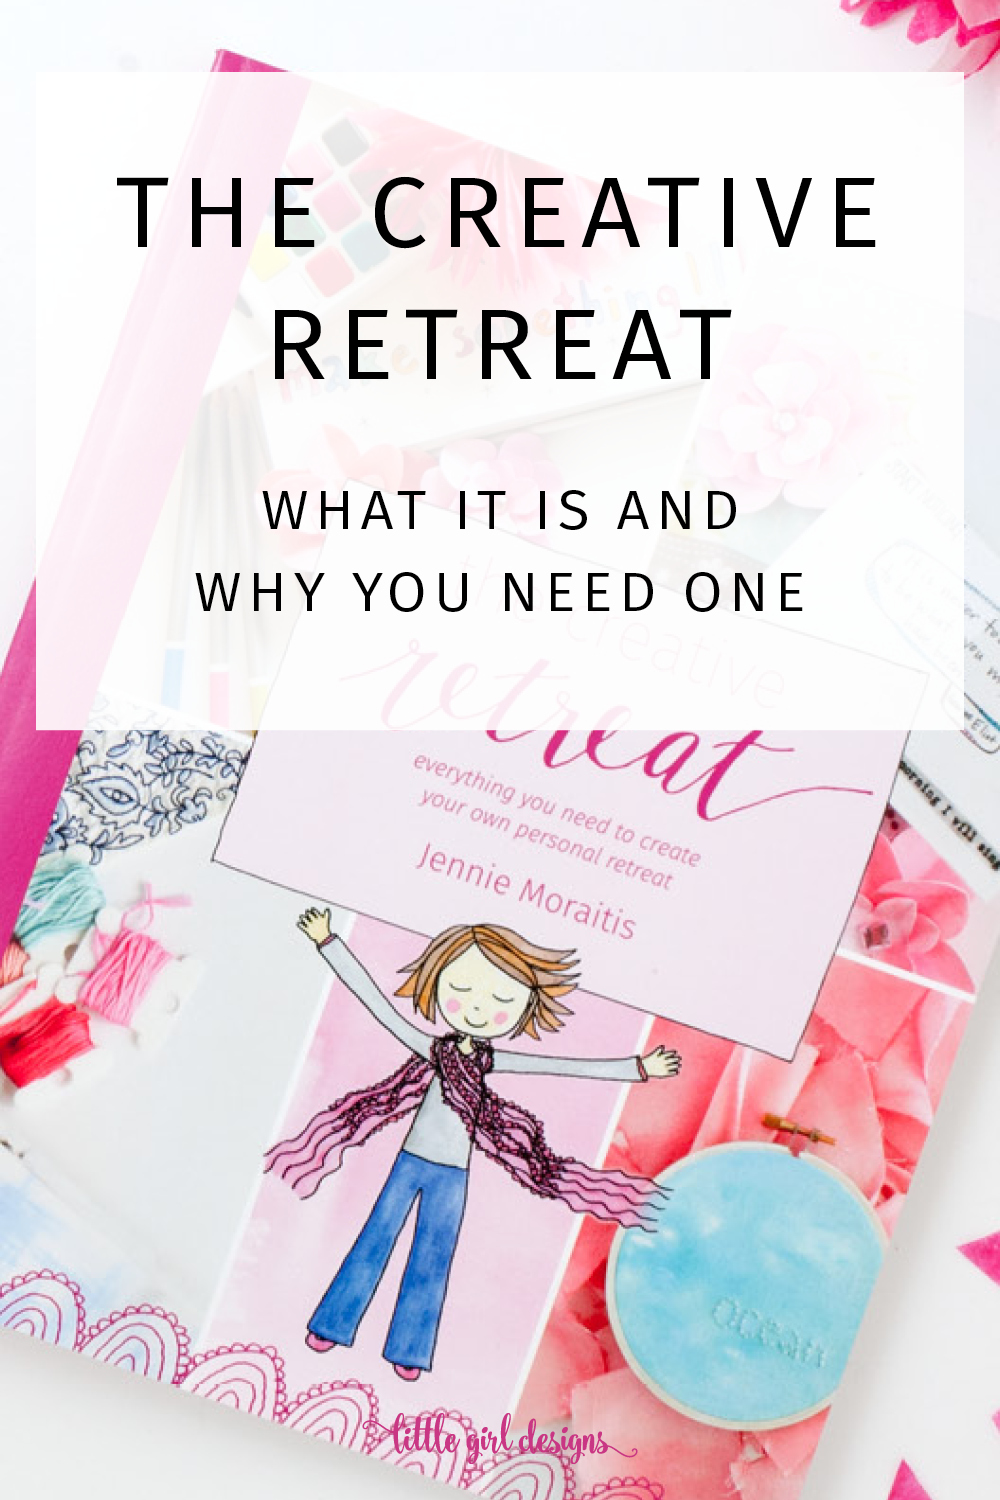 The Creative Retreat - Don't you wish you could get away and work on your creative projects? I'll show you how to create your own personal retreat with this resource. You're going to love this! @ littlegirldesigns.com